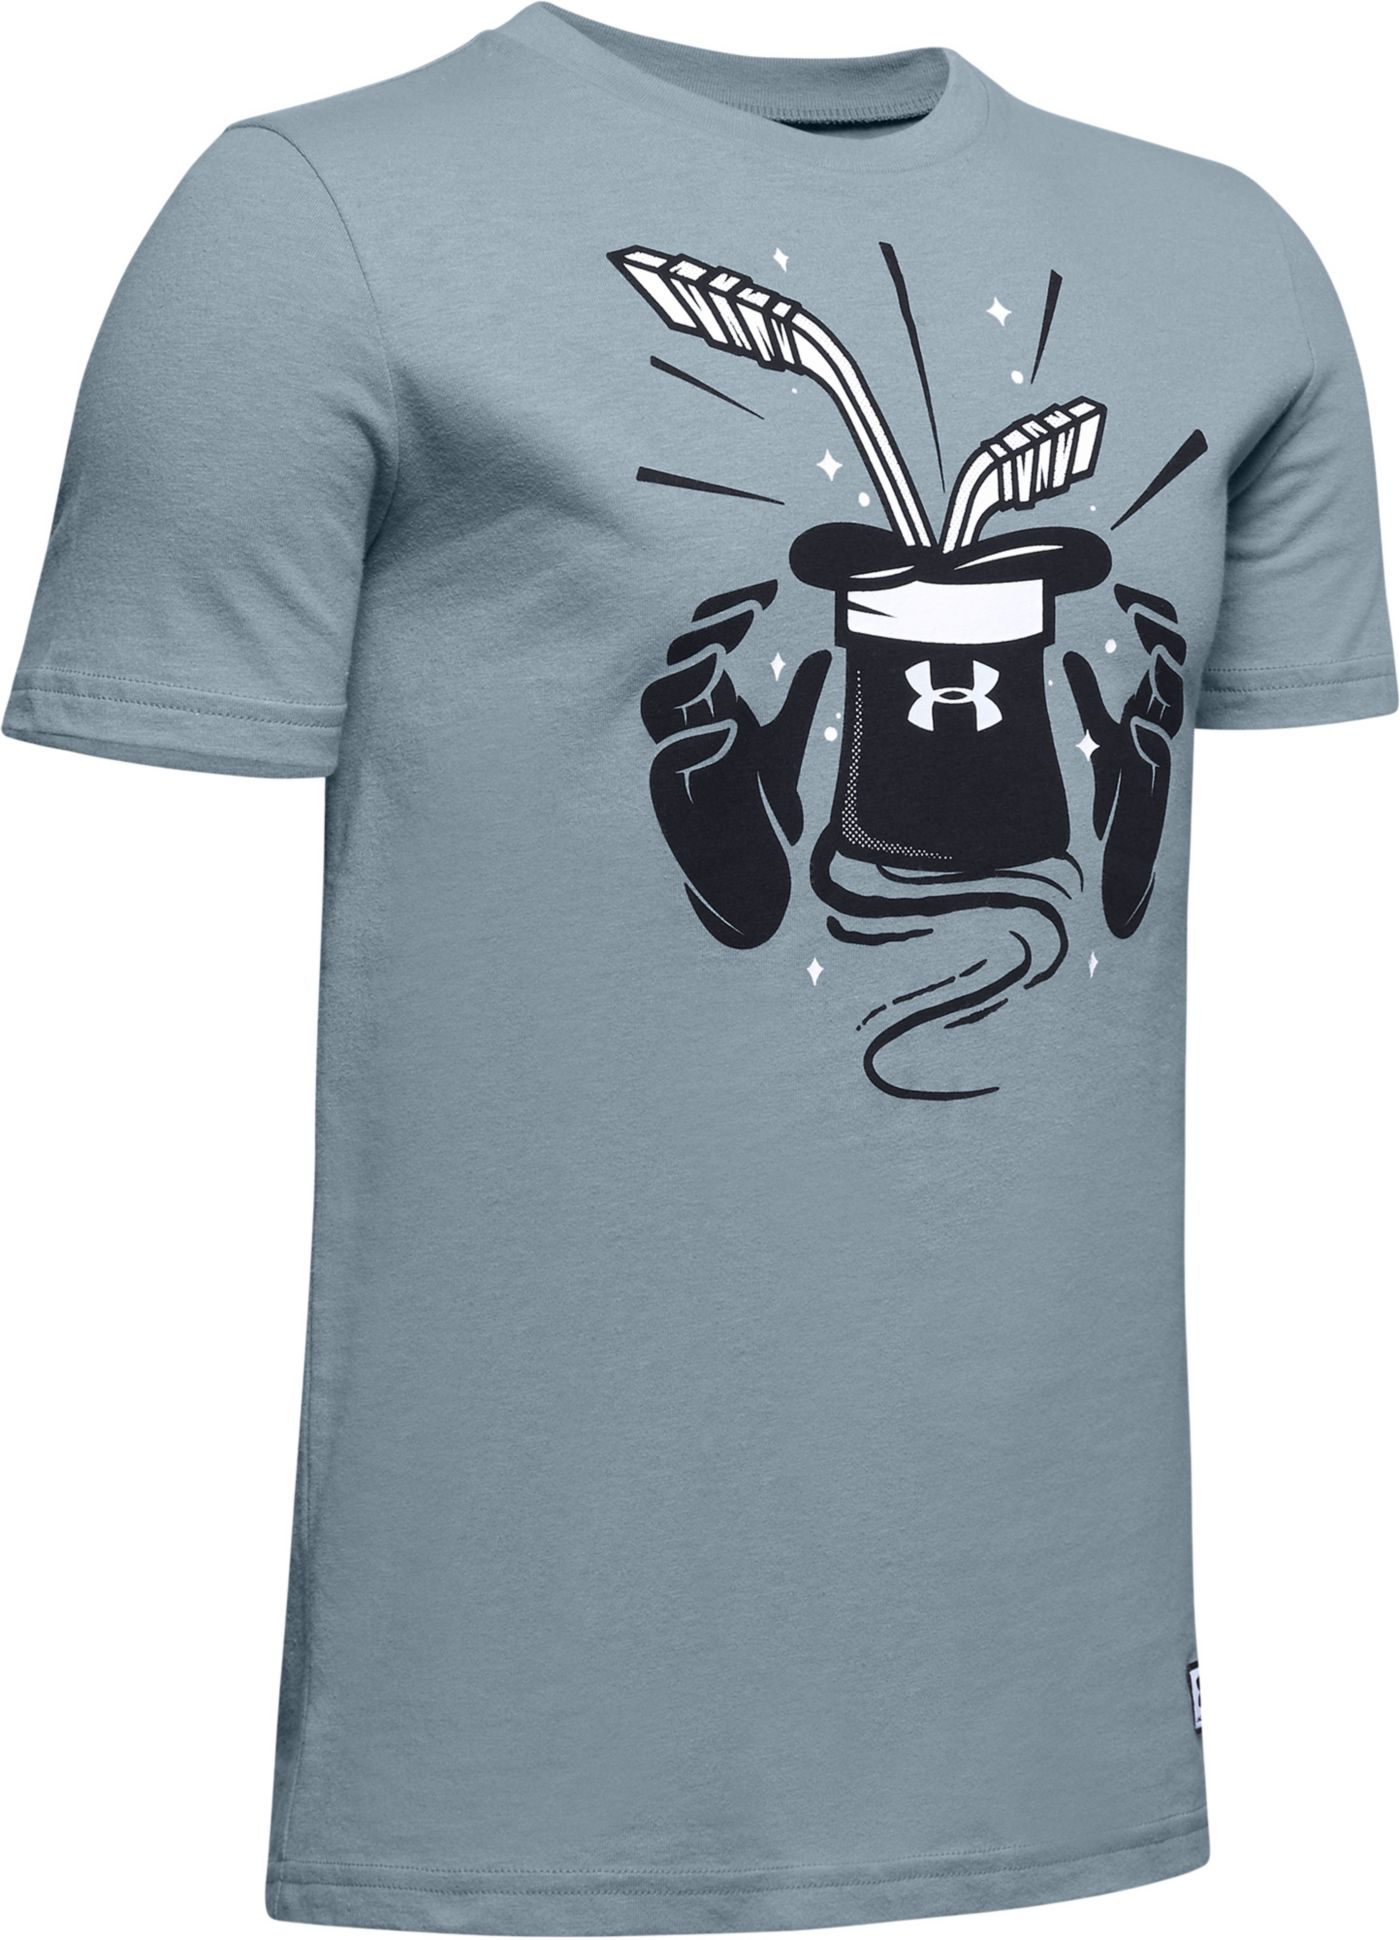 Under Armour Youth Hat Trick Hockey T-Shirt